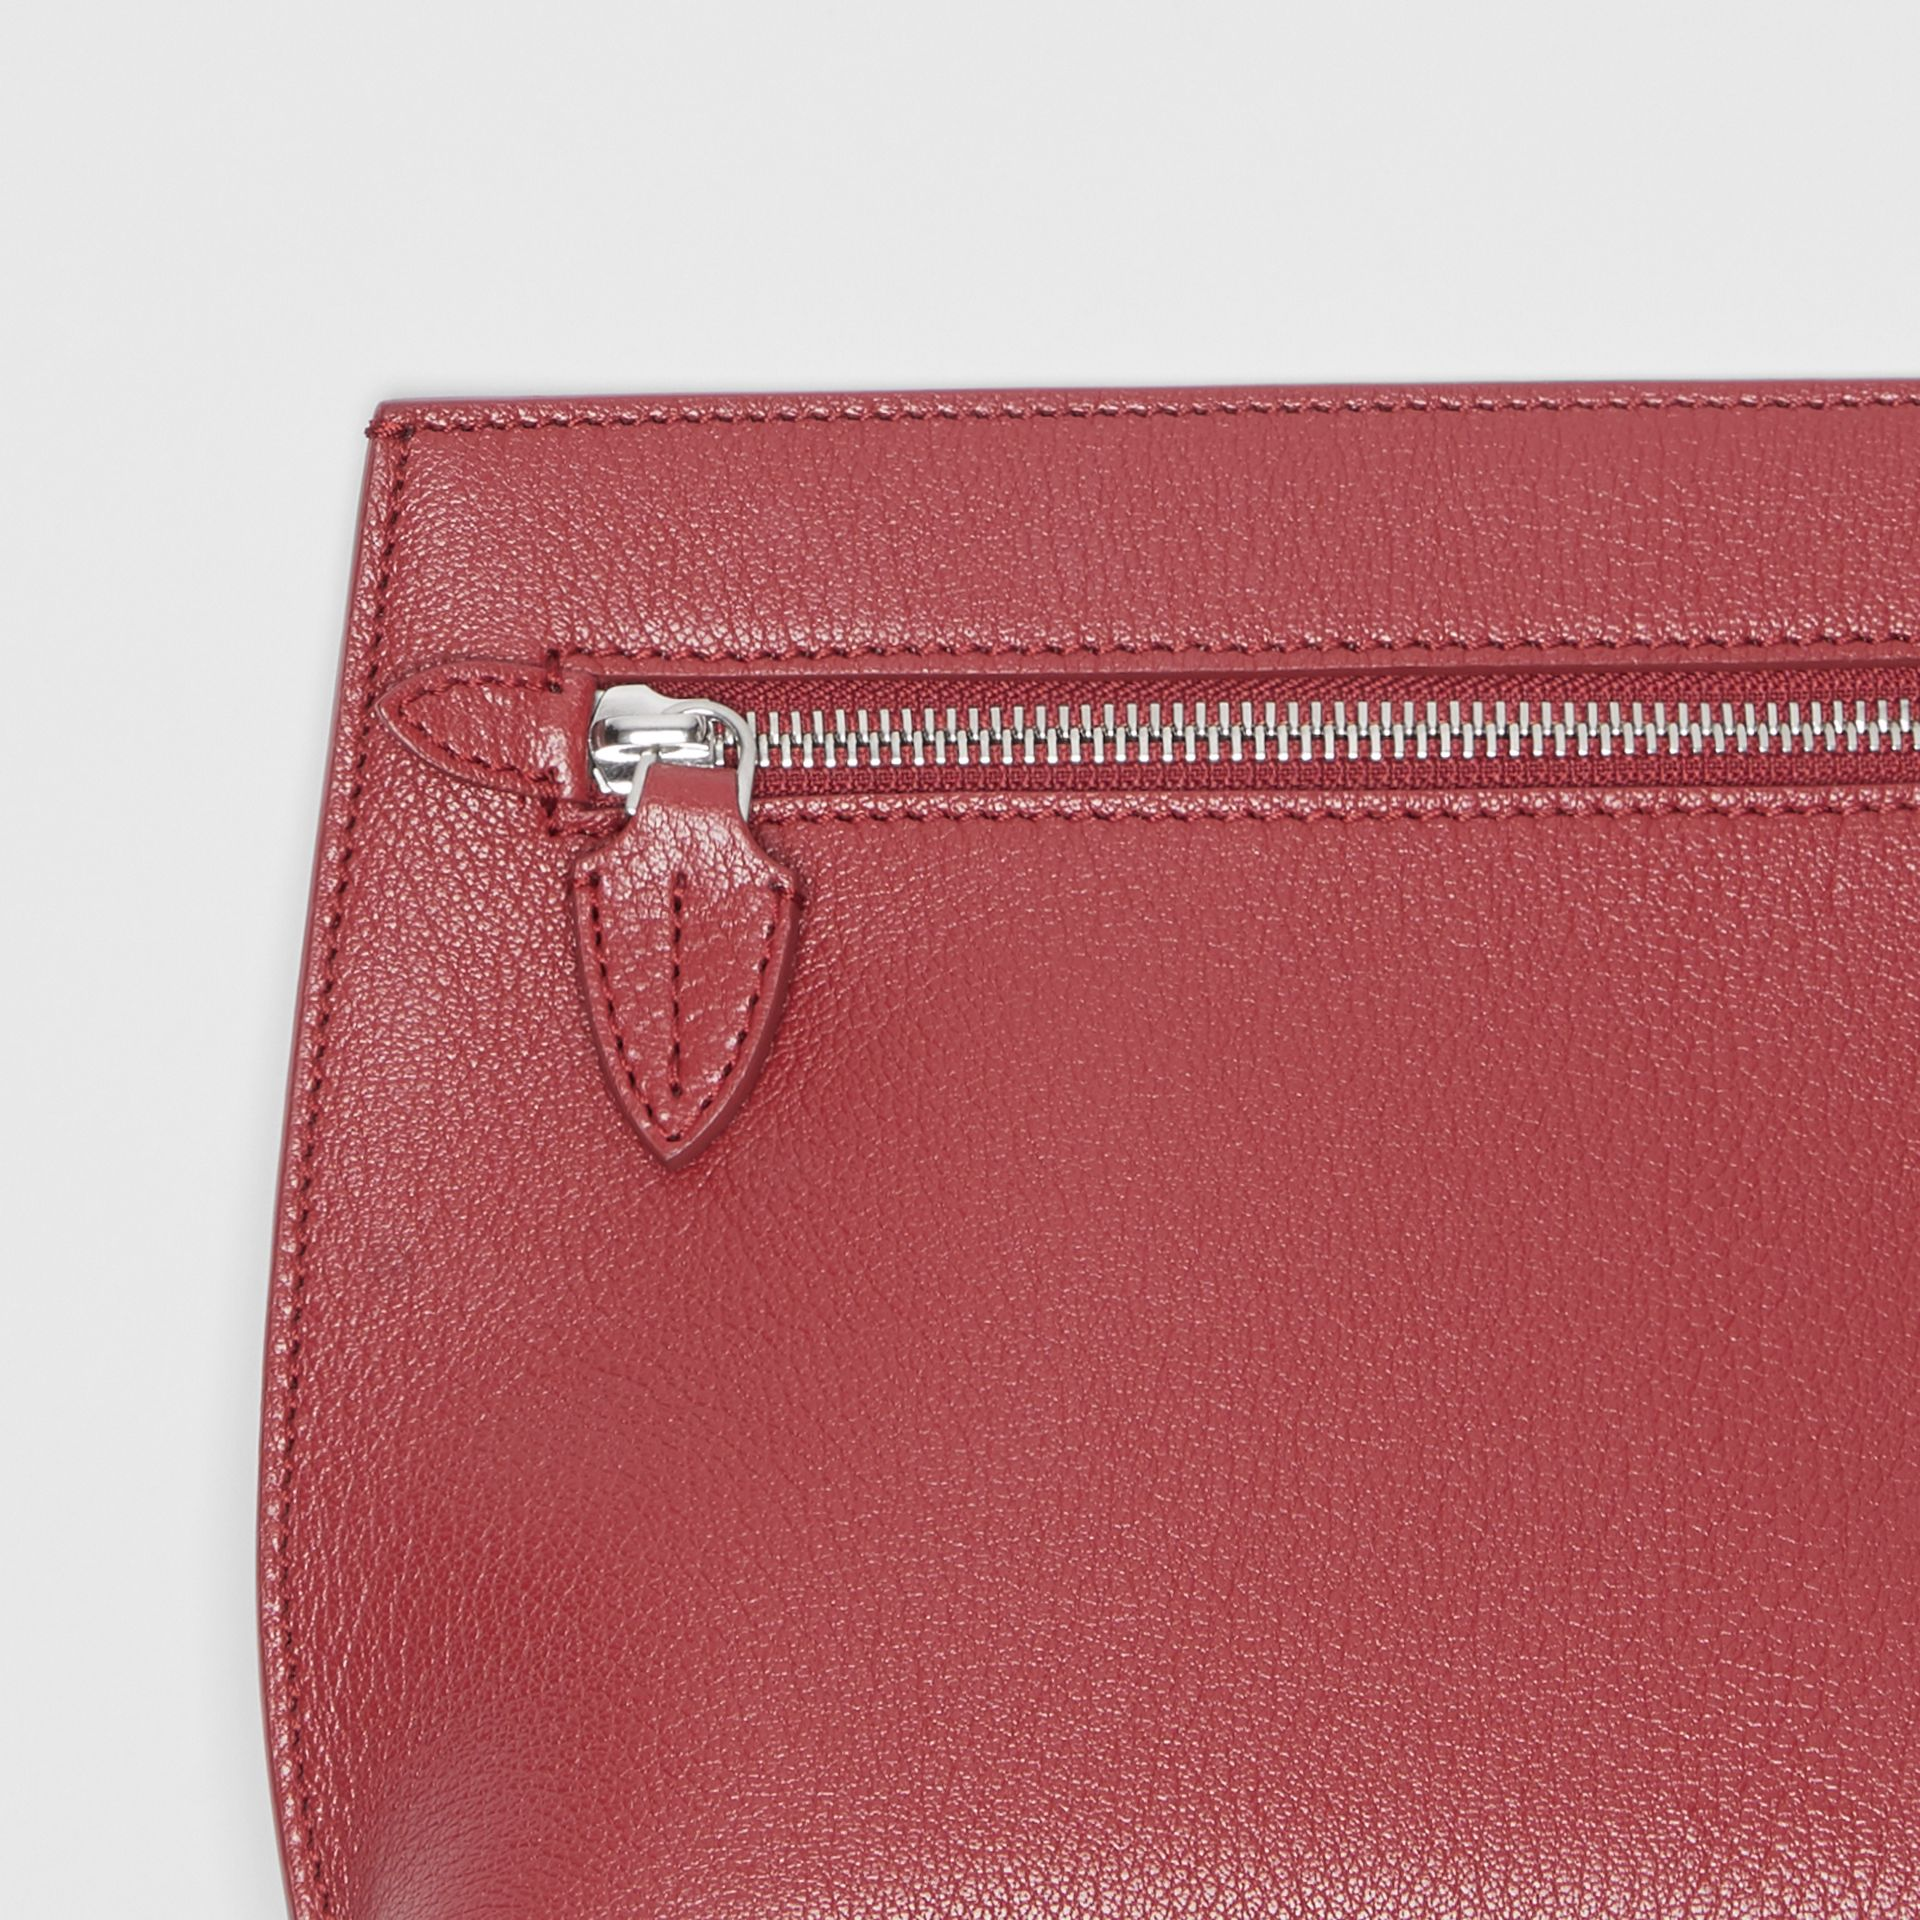 Grainy Leather Wristlet Clutch in Crimson - Women | Burberry United States - gallery image 1